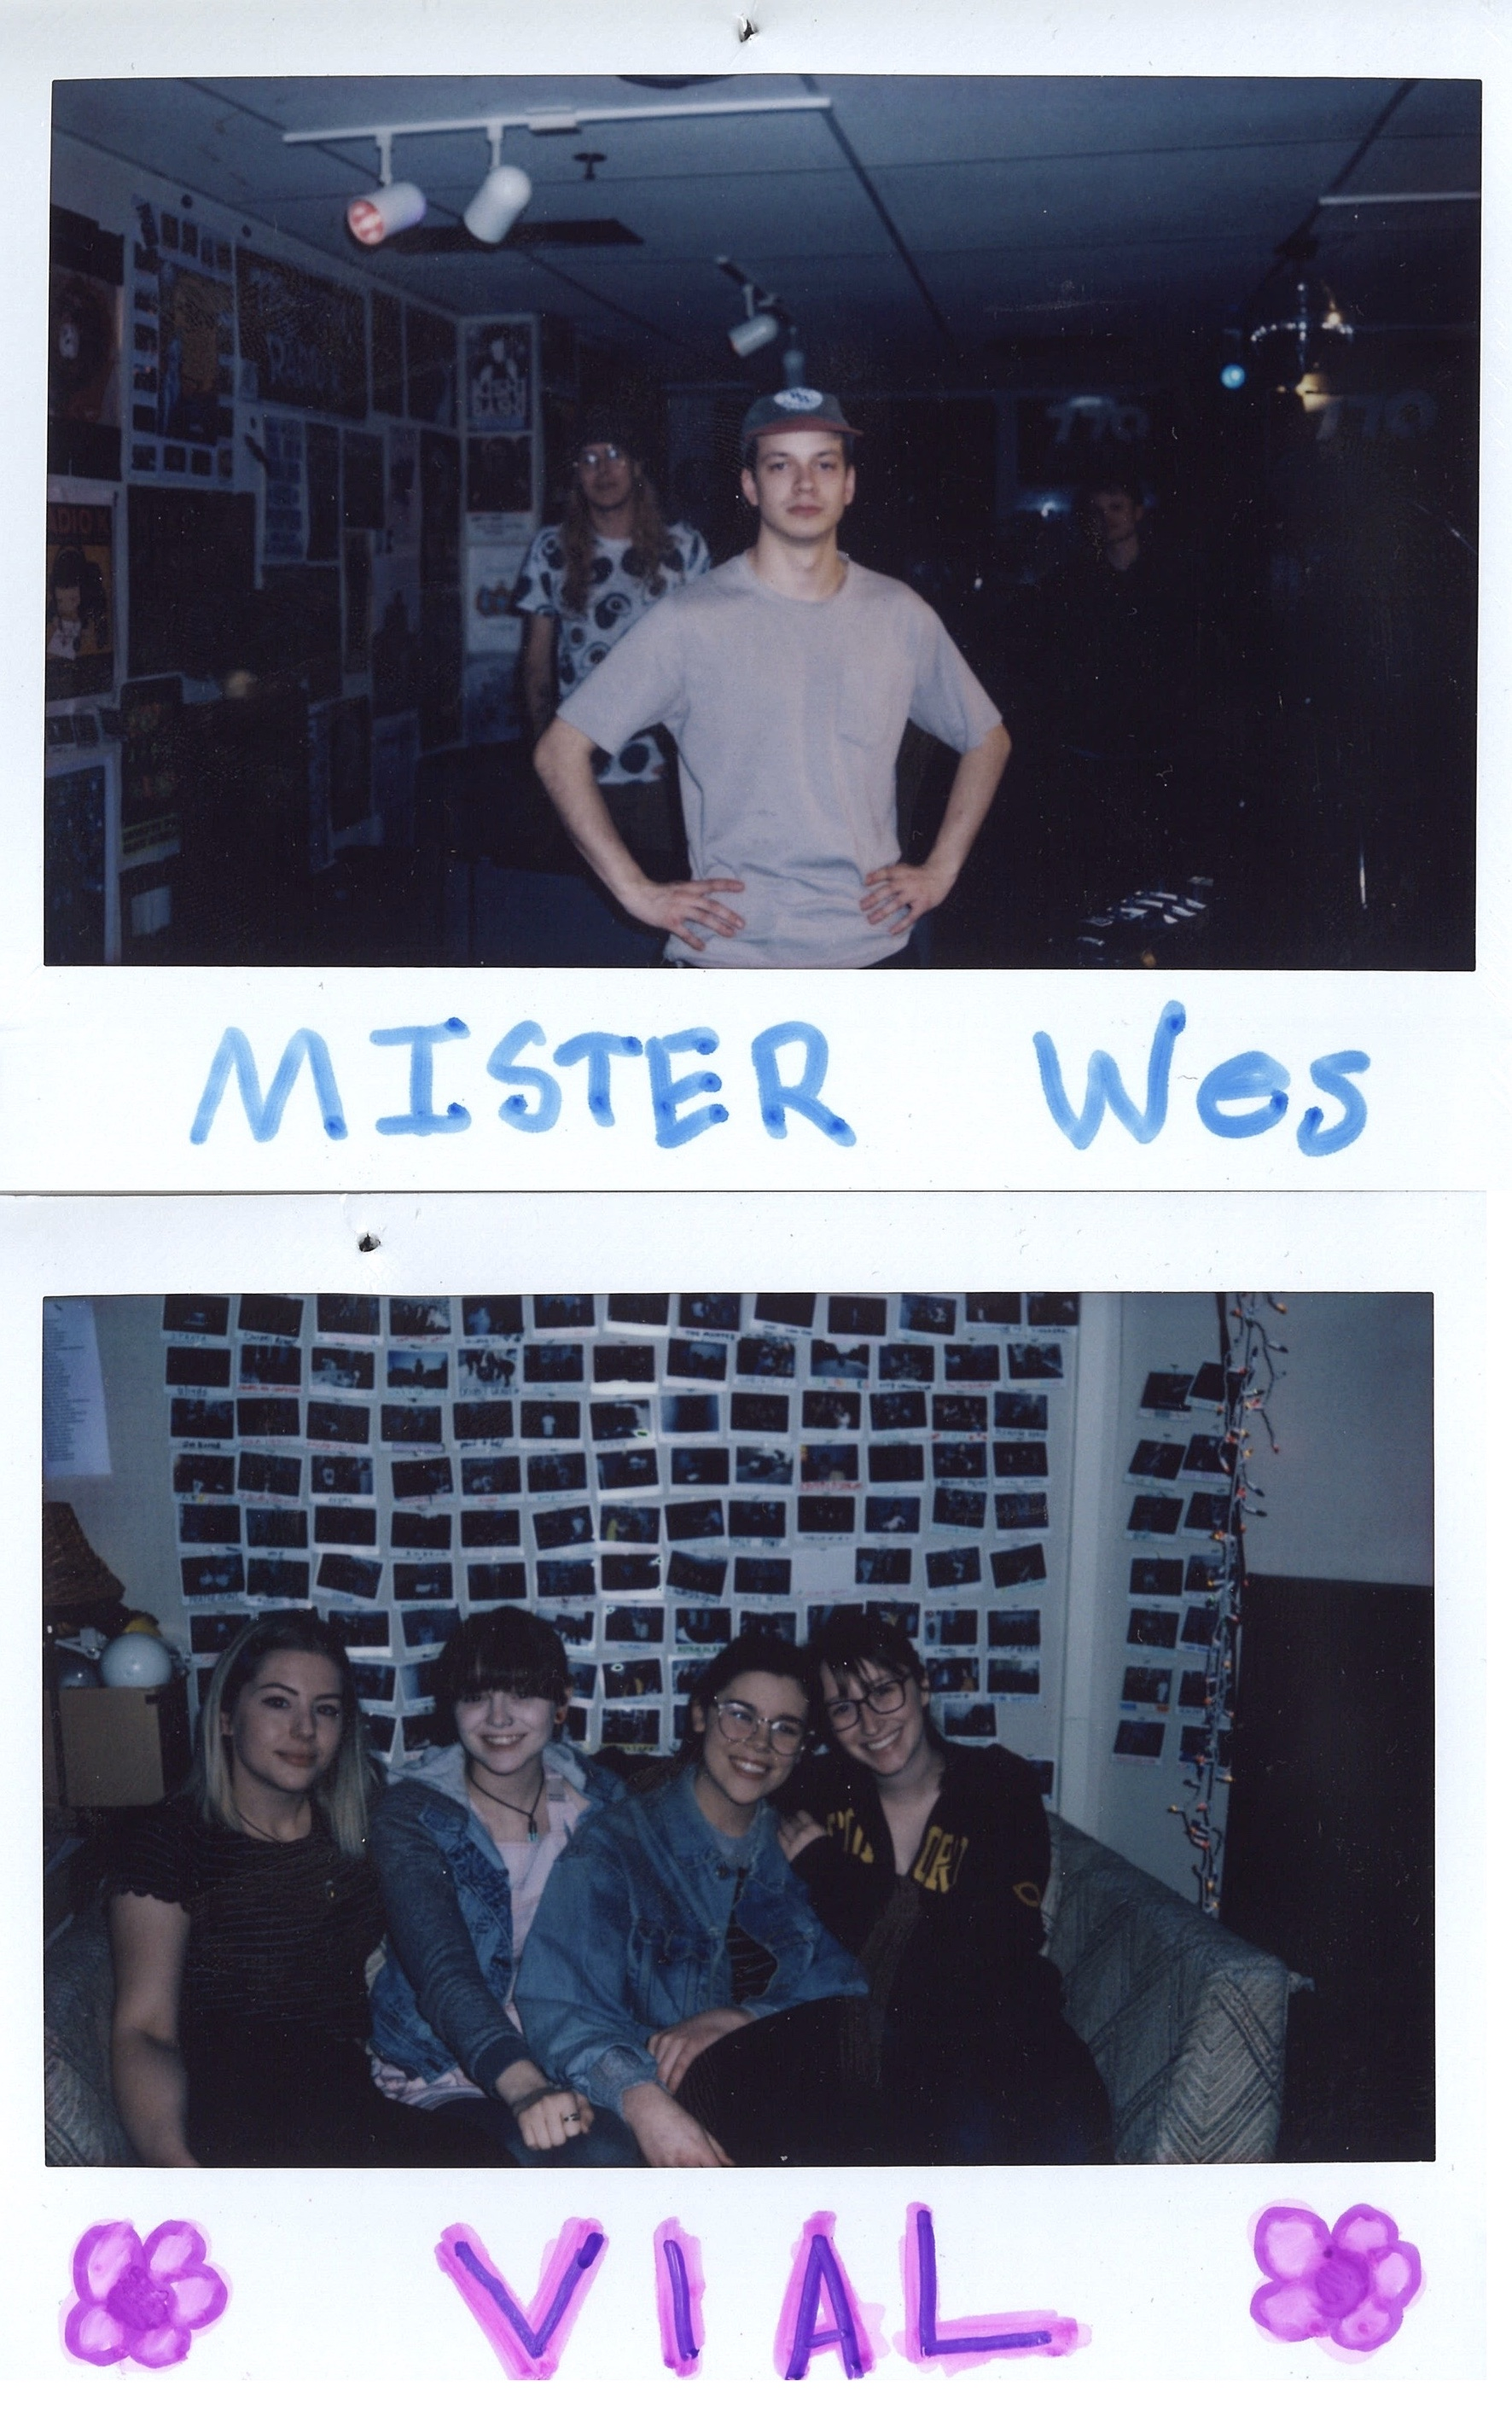 Episode 24: Mister Wes and Vial